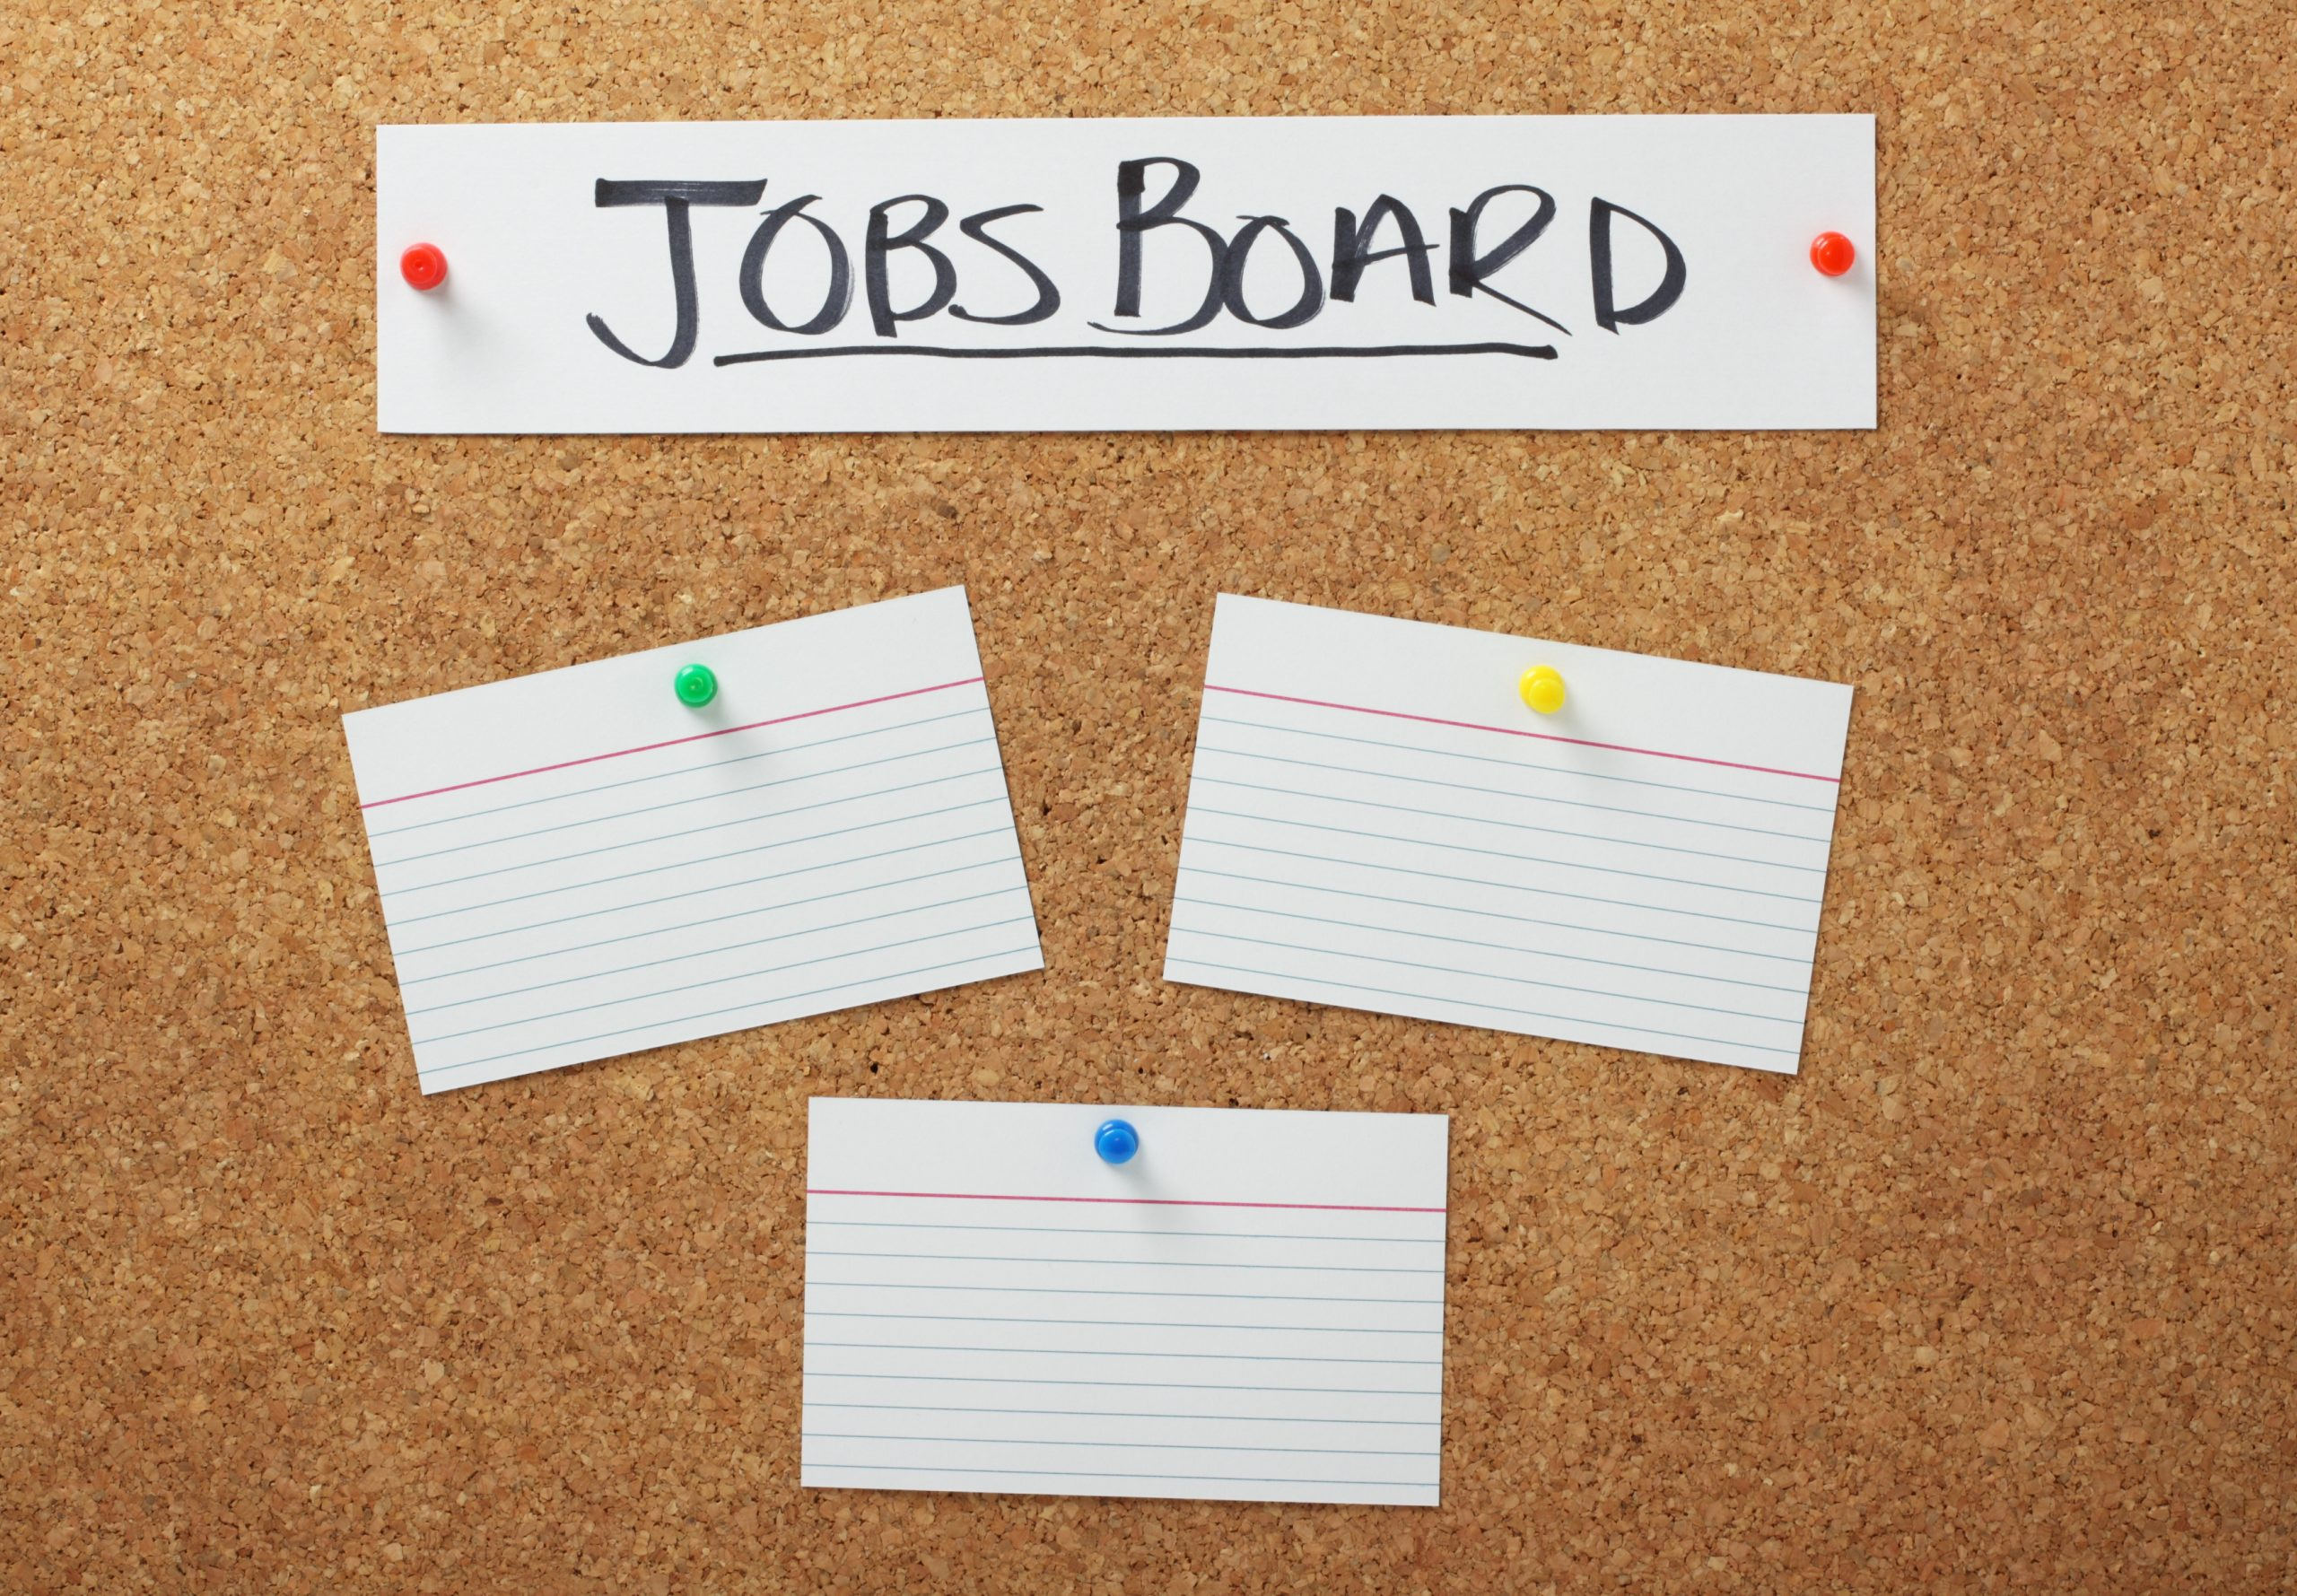 A Jobs Board banner on a cork notice board with blank white note cards for copy space